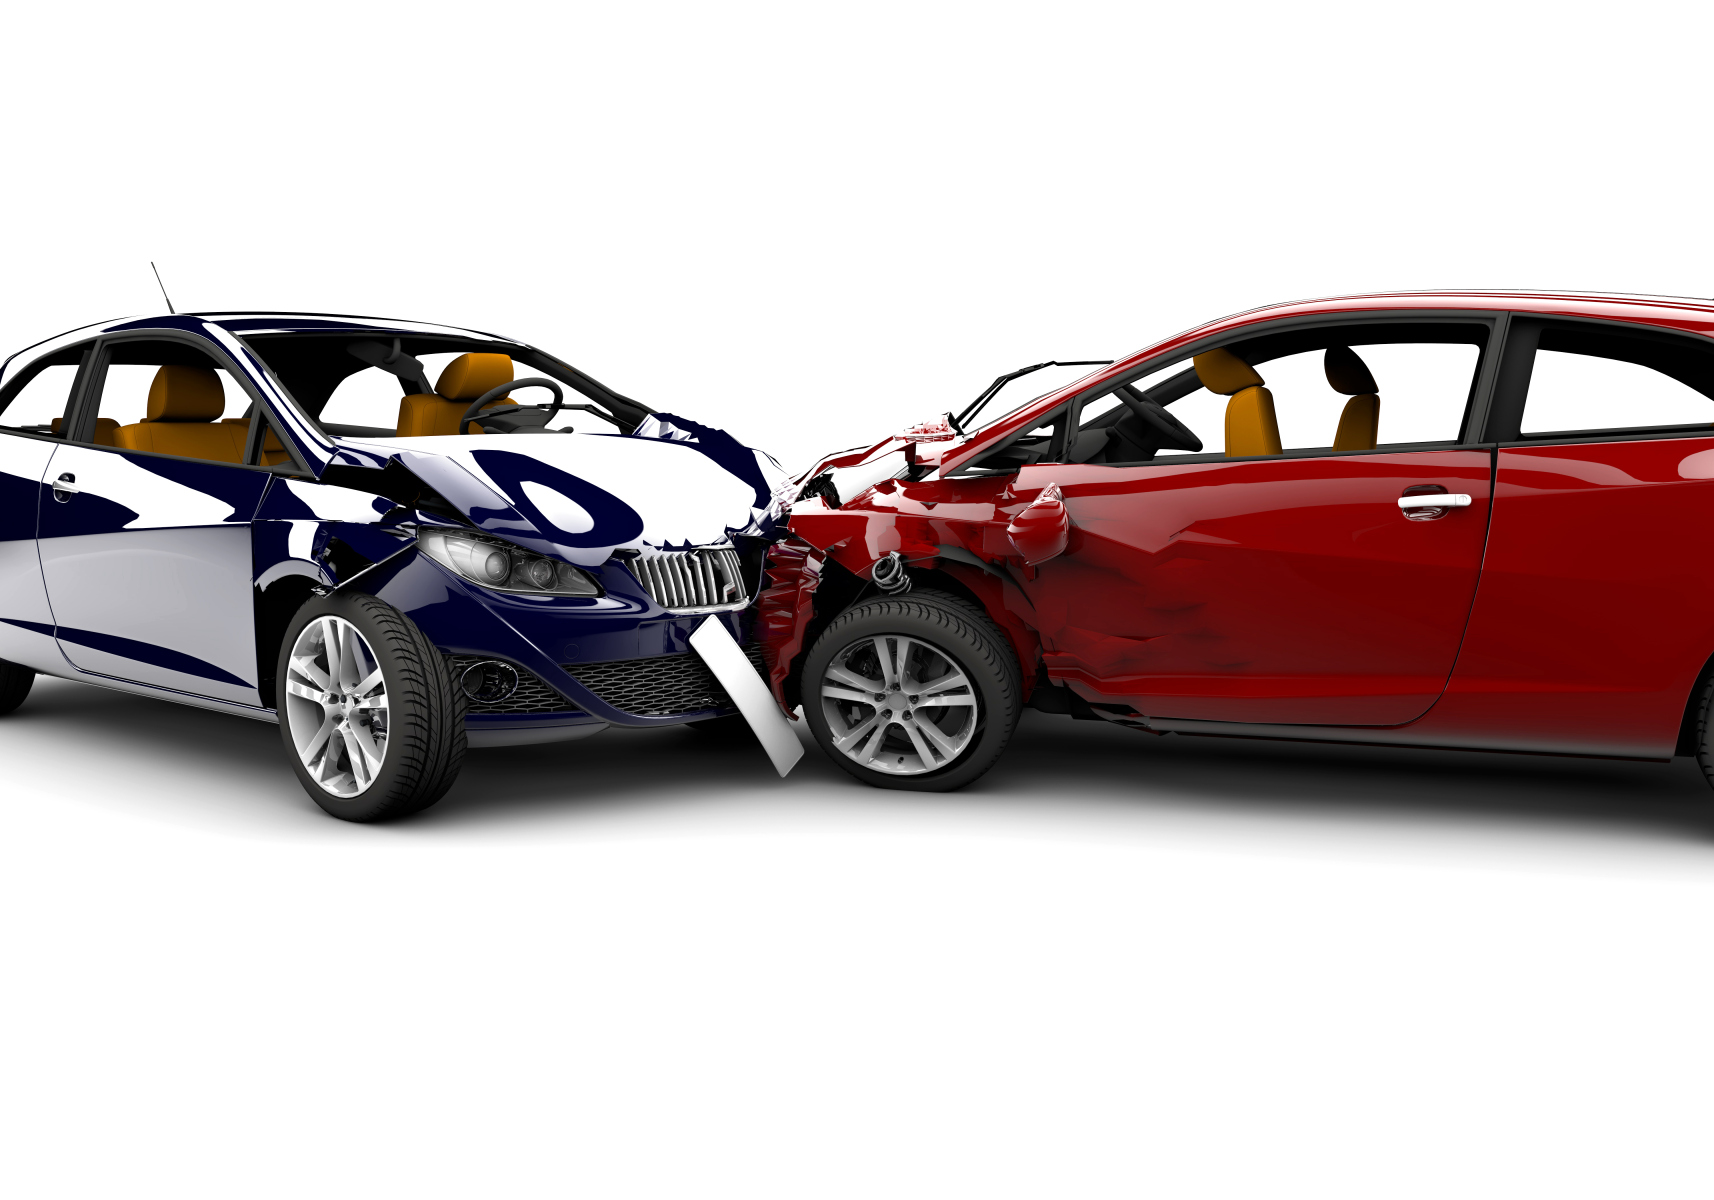 Faq - Car Insurance Legal tips: Disputing an Insurance Total Loss on your Car